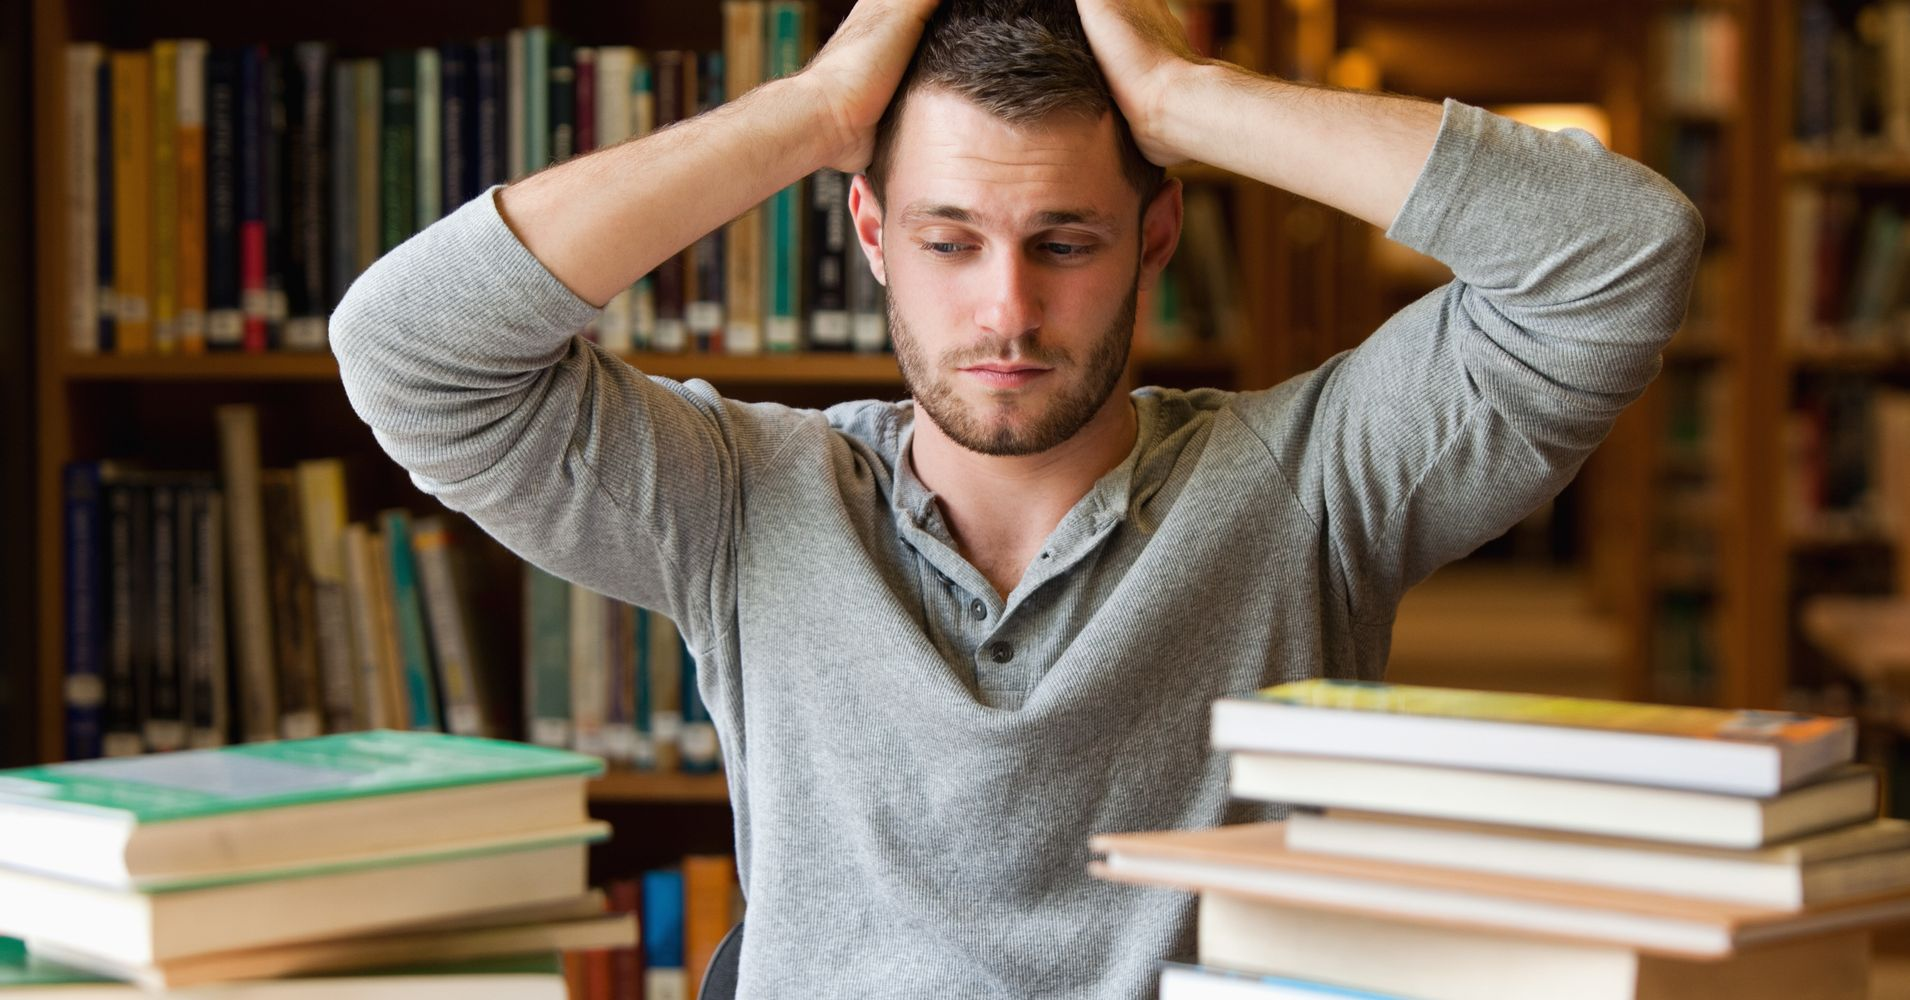 4 Mistakes to Avoid in College Especially When Broke!